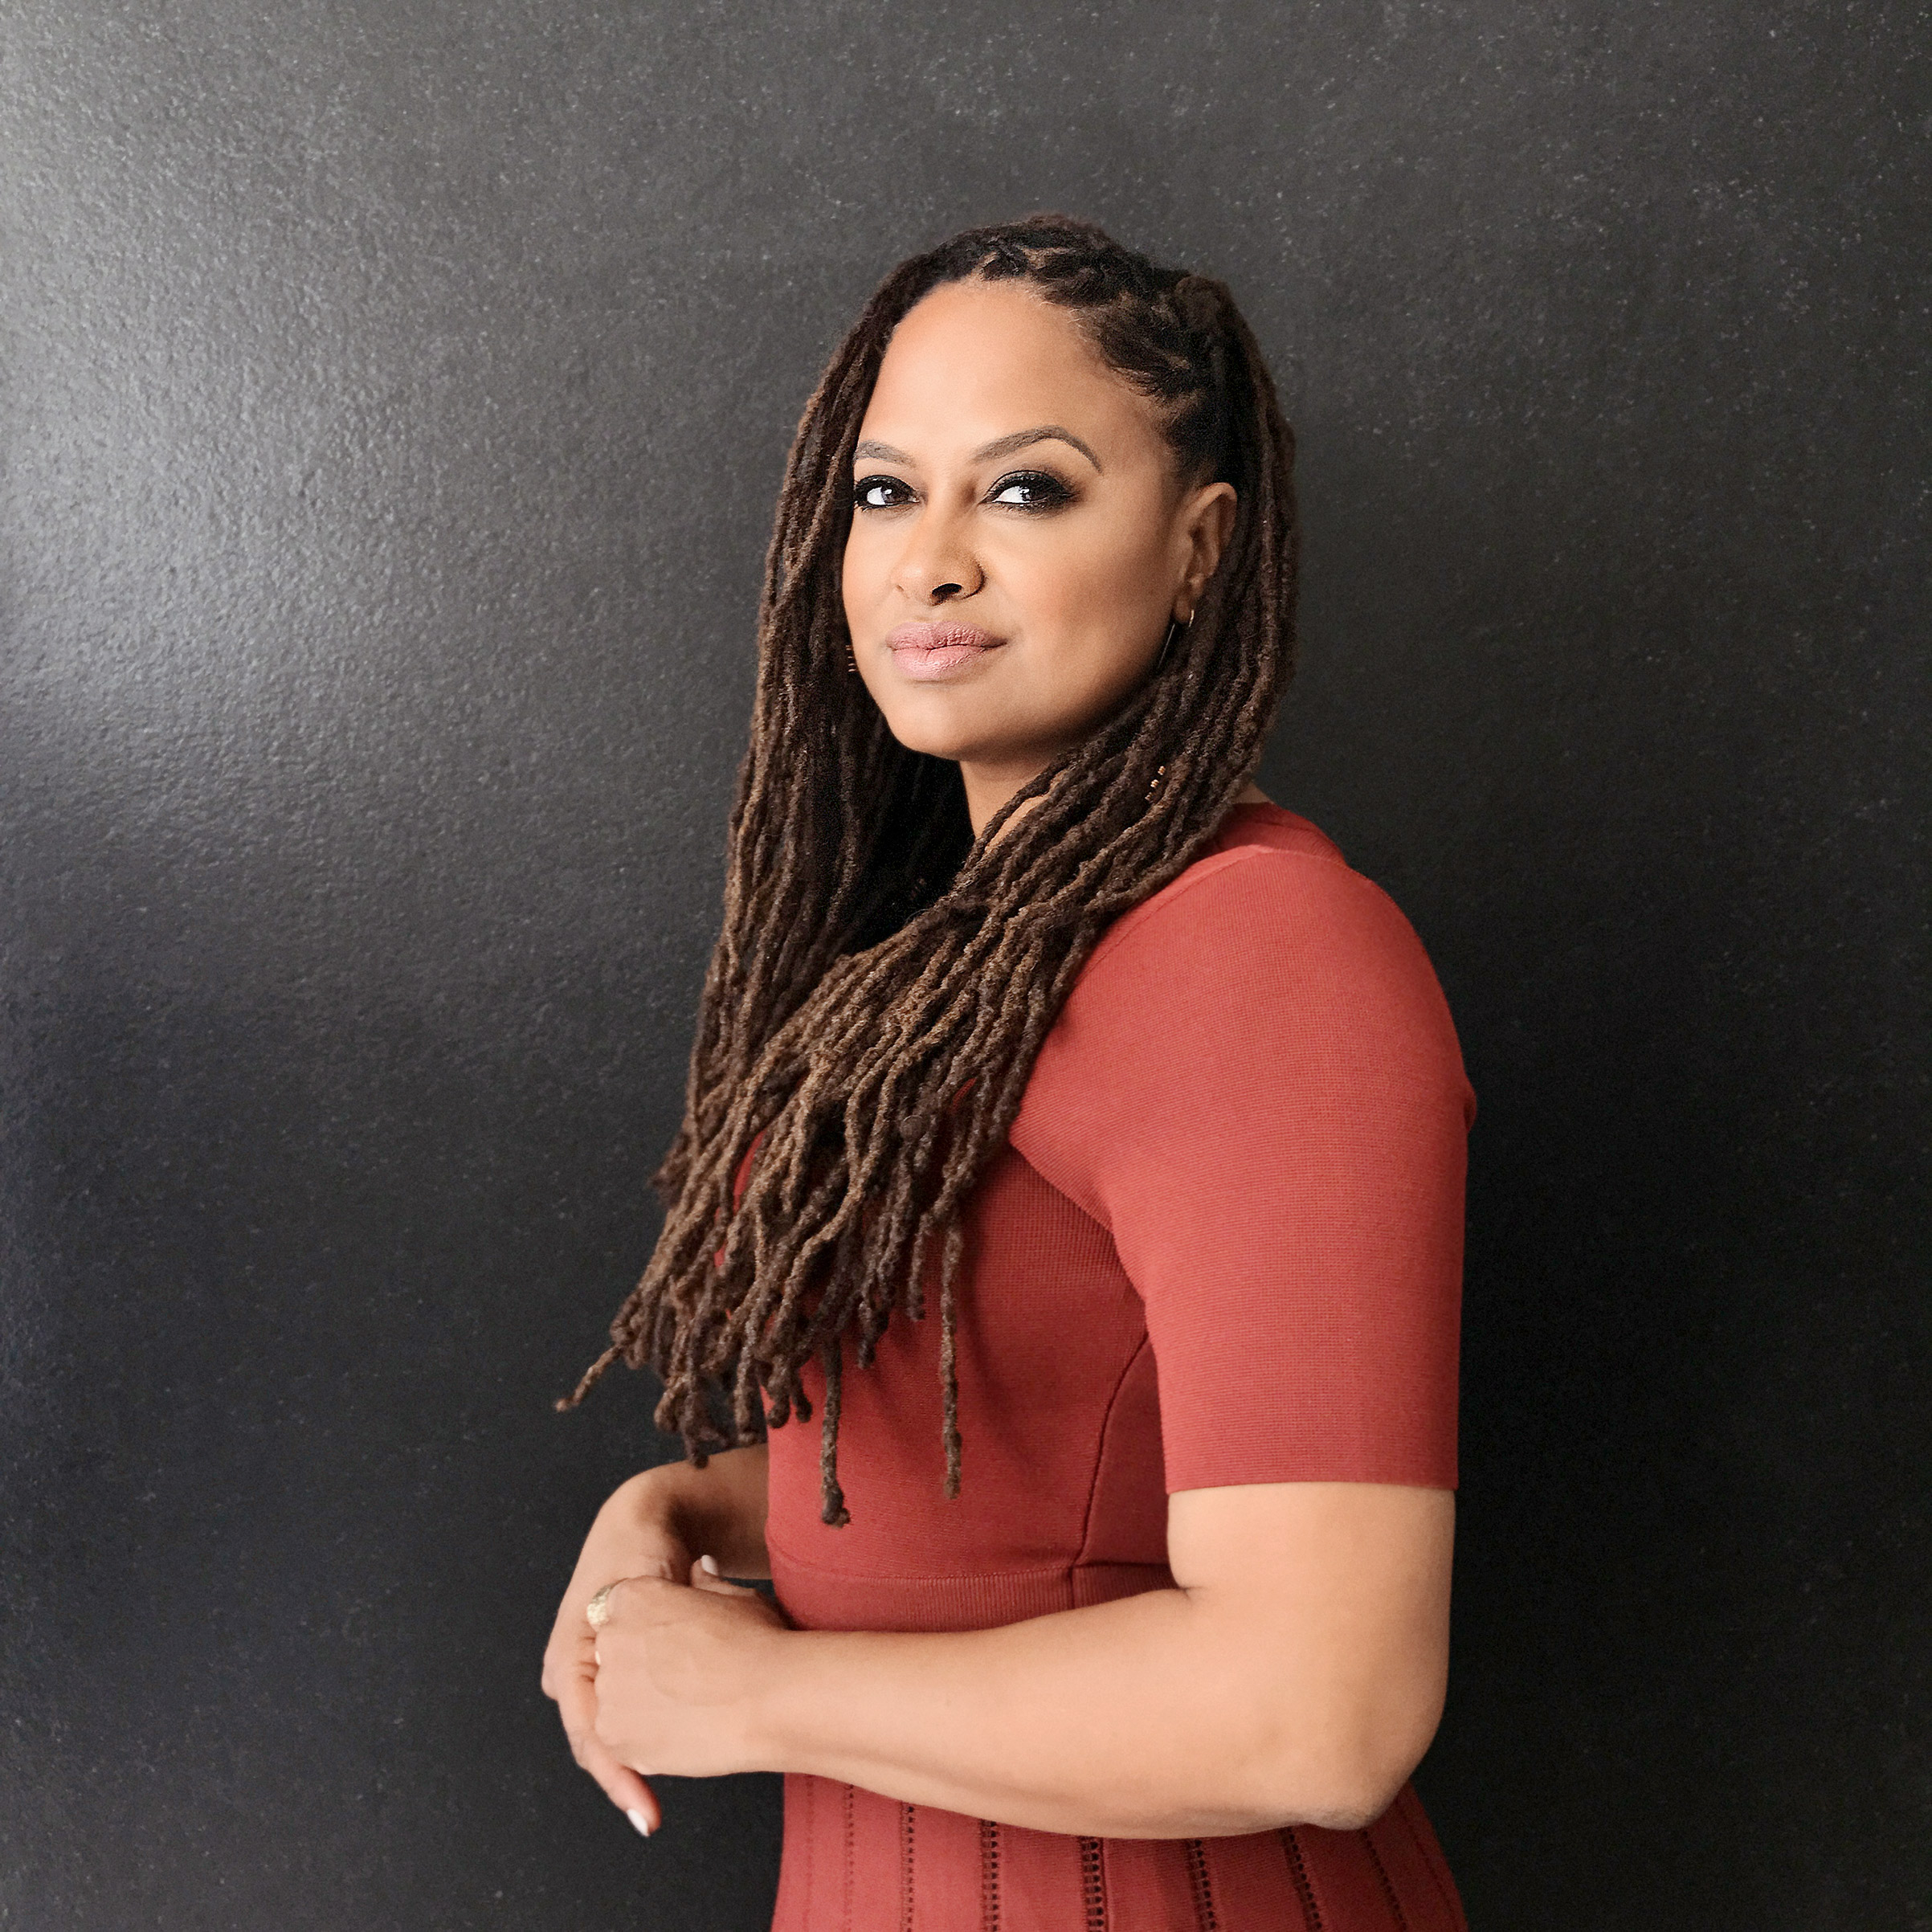 Portrait of Ava DuVernay, photographed at Milk Studios in Los Angeles, CA, October 22, 2016.